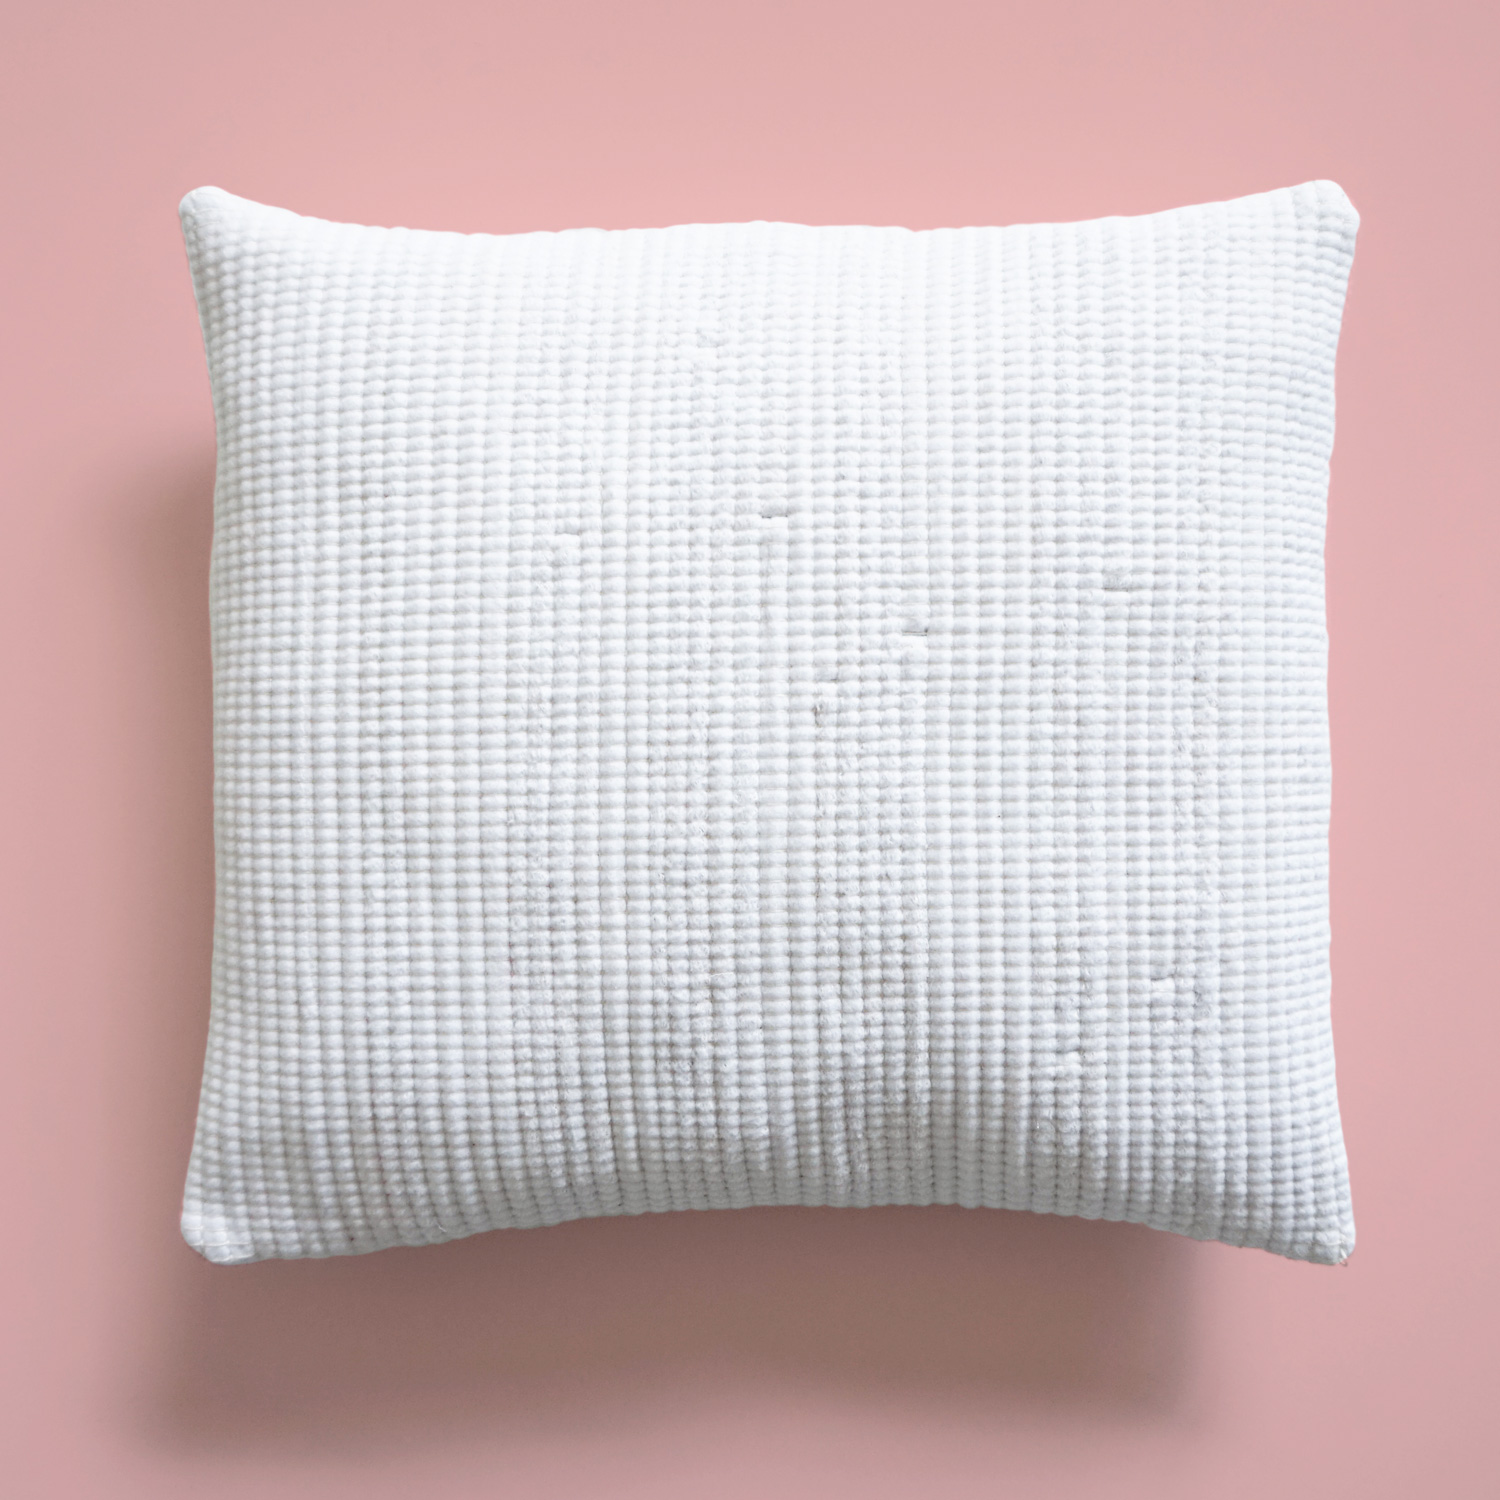 Soft, textured white accent pillows to subtly spice up your sofa or armchair. Comes in a classic square or funky cylindrical shape.